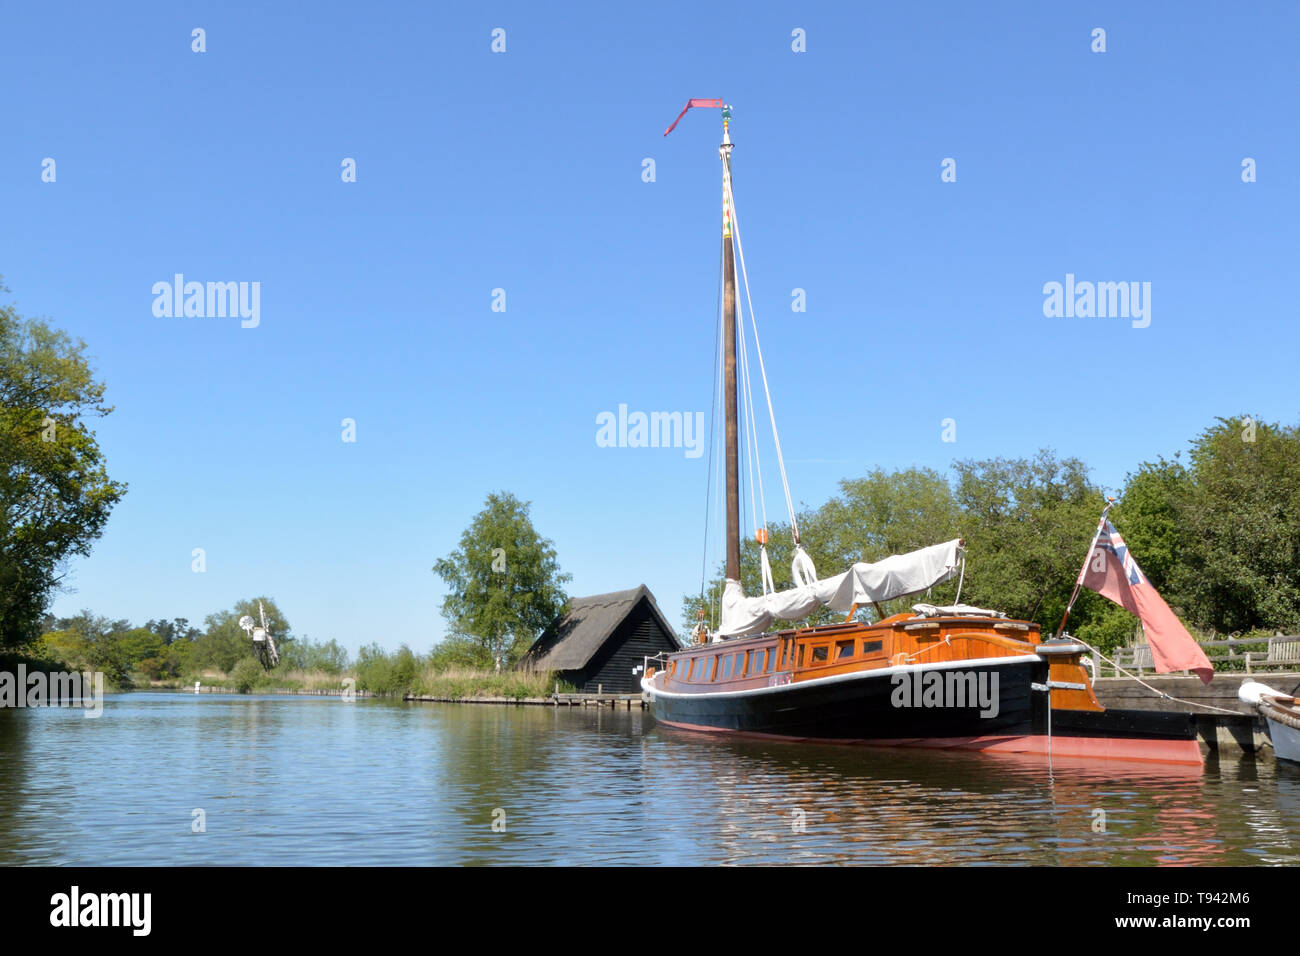 Historic pleasure wherry Hathor moored at How Hill, River Ant, Broads National Park, Norfolk, UK Stock Photo